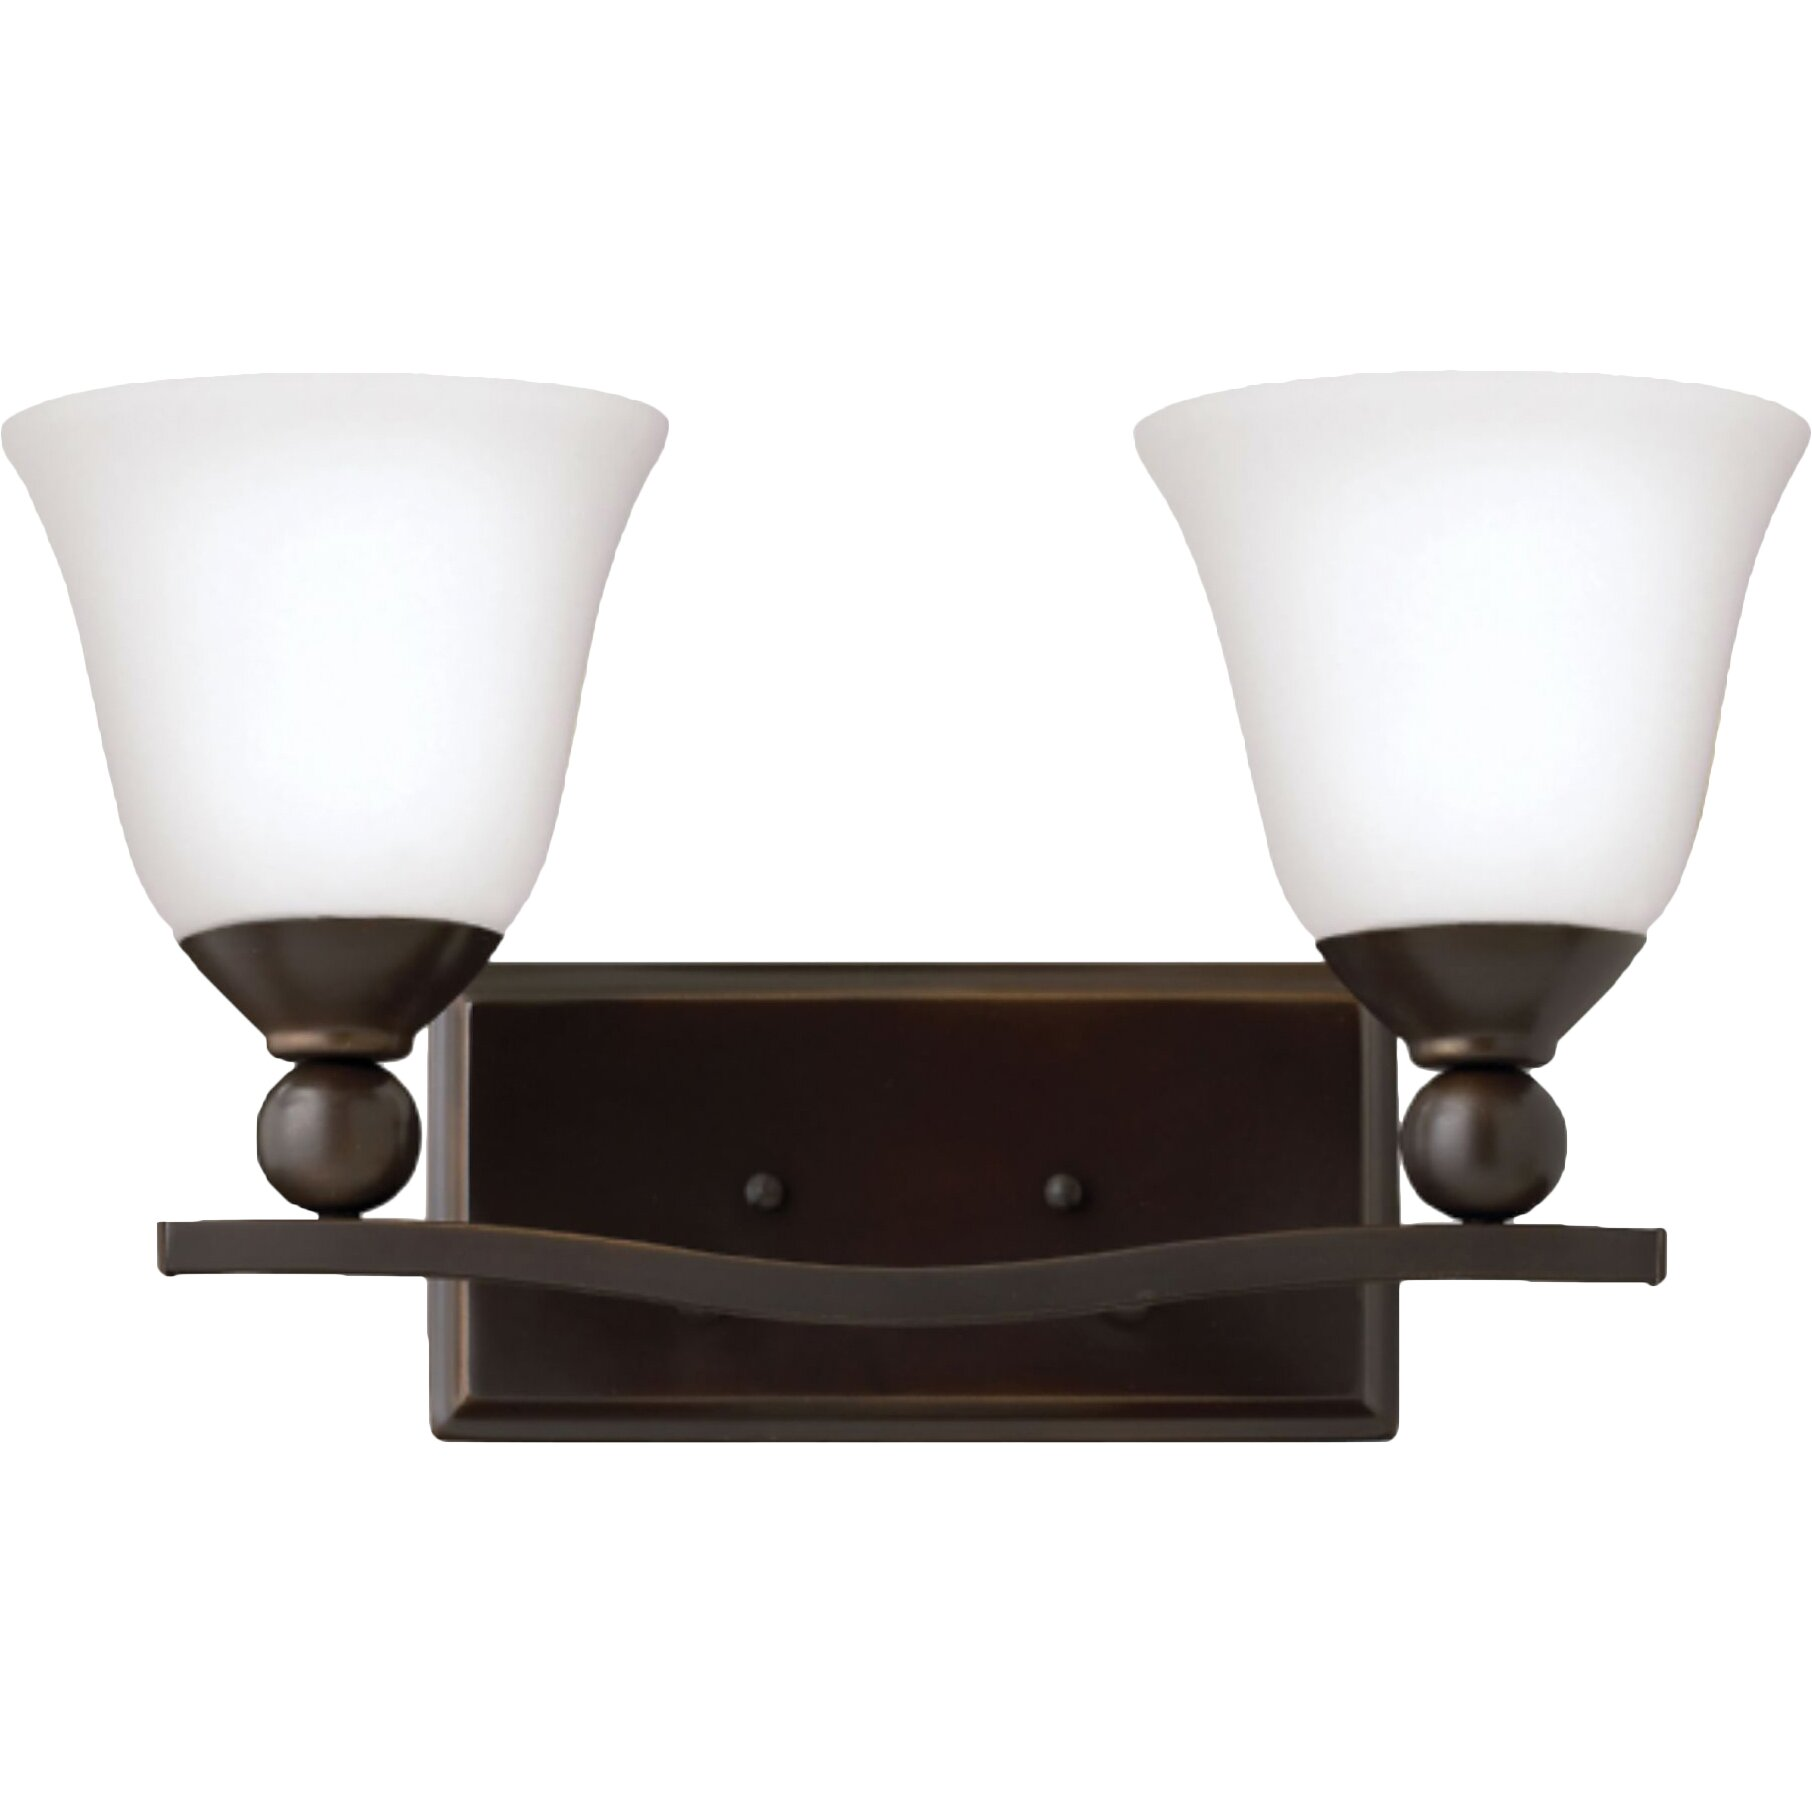 Hinkley Lighting Bolla 2 Light Vanity Wall Sconce & Reviews Wayfair